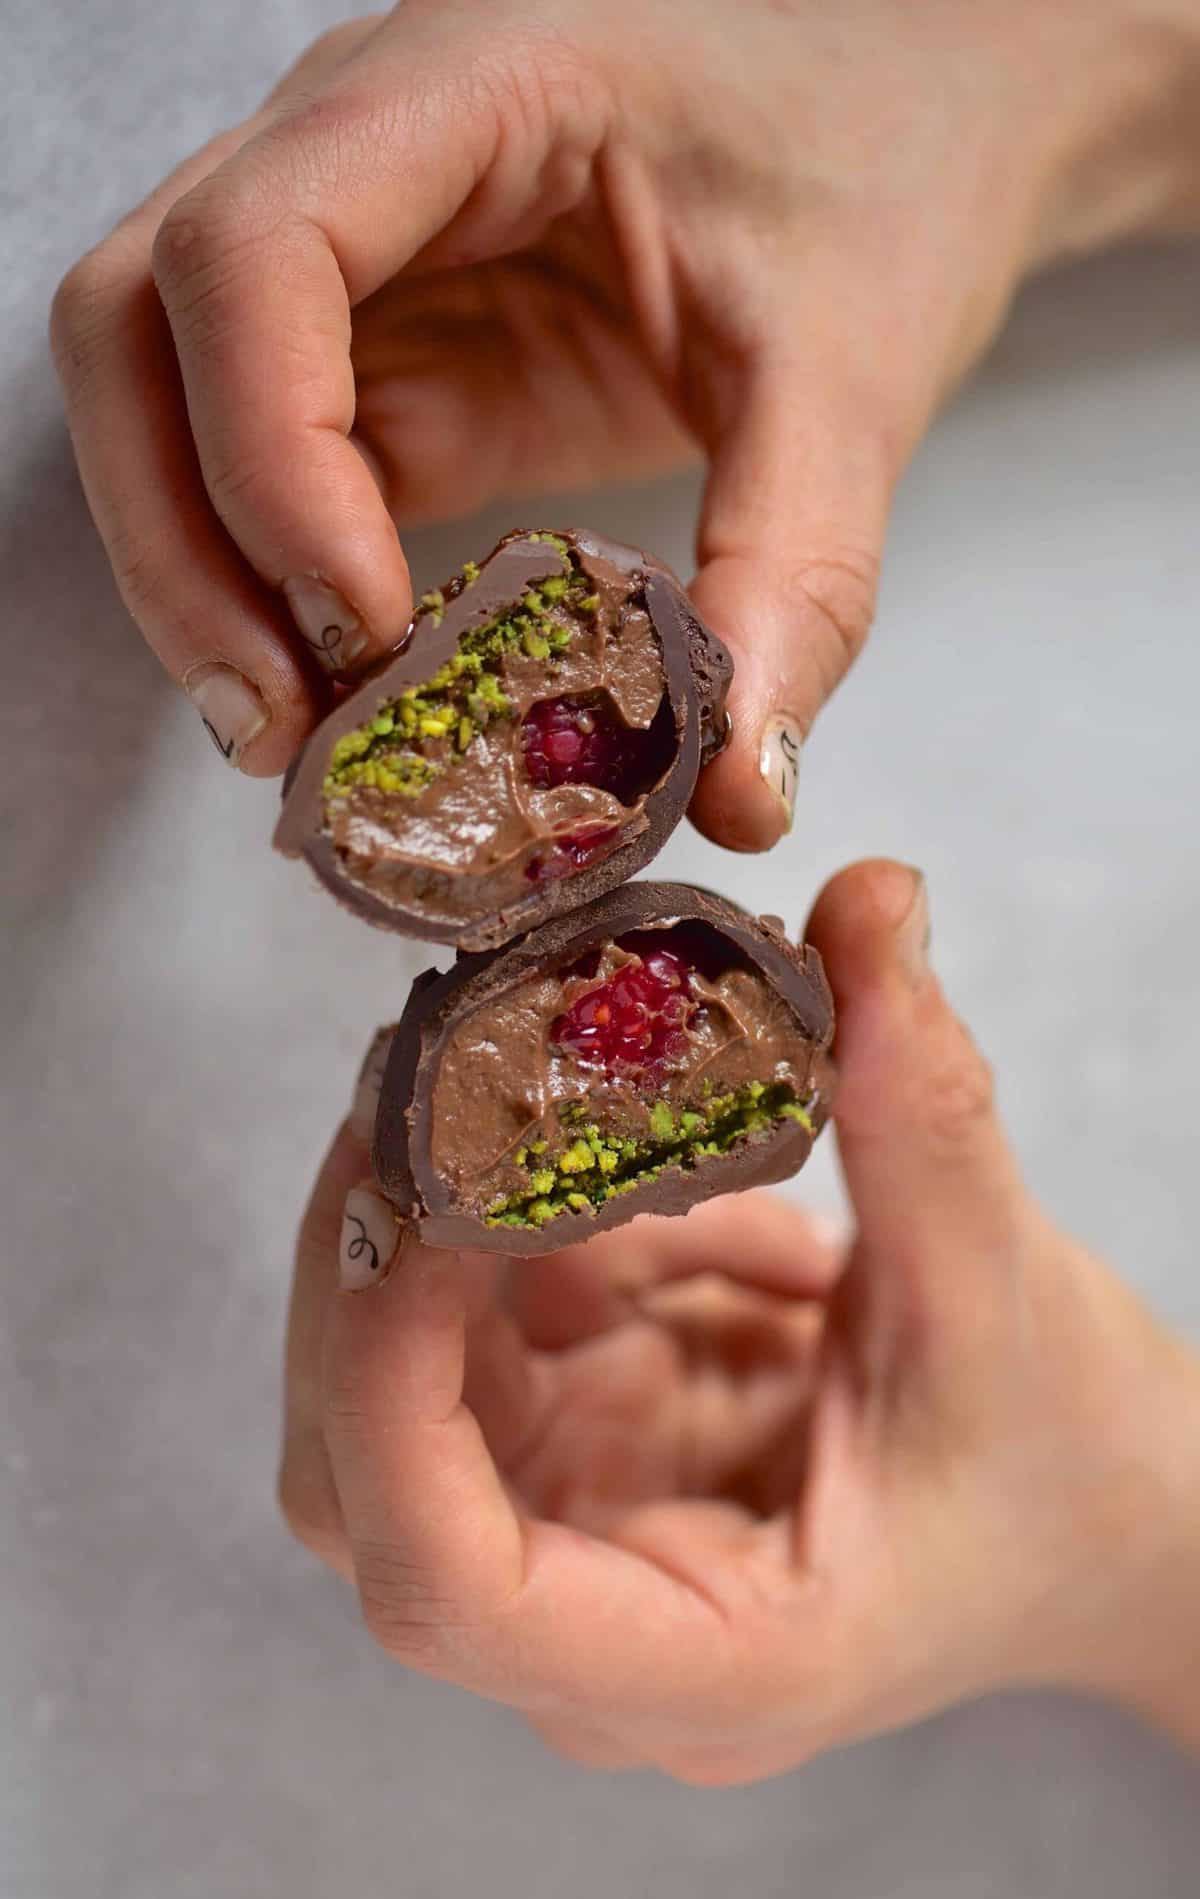 heart-shaped chocolate truffles with avocado chocolate mousse, raspberries and pistachios